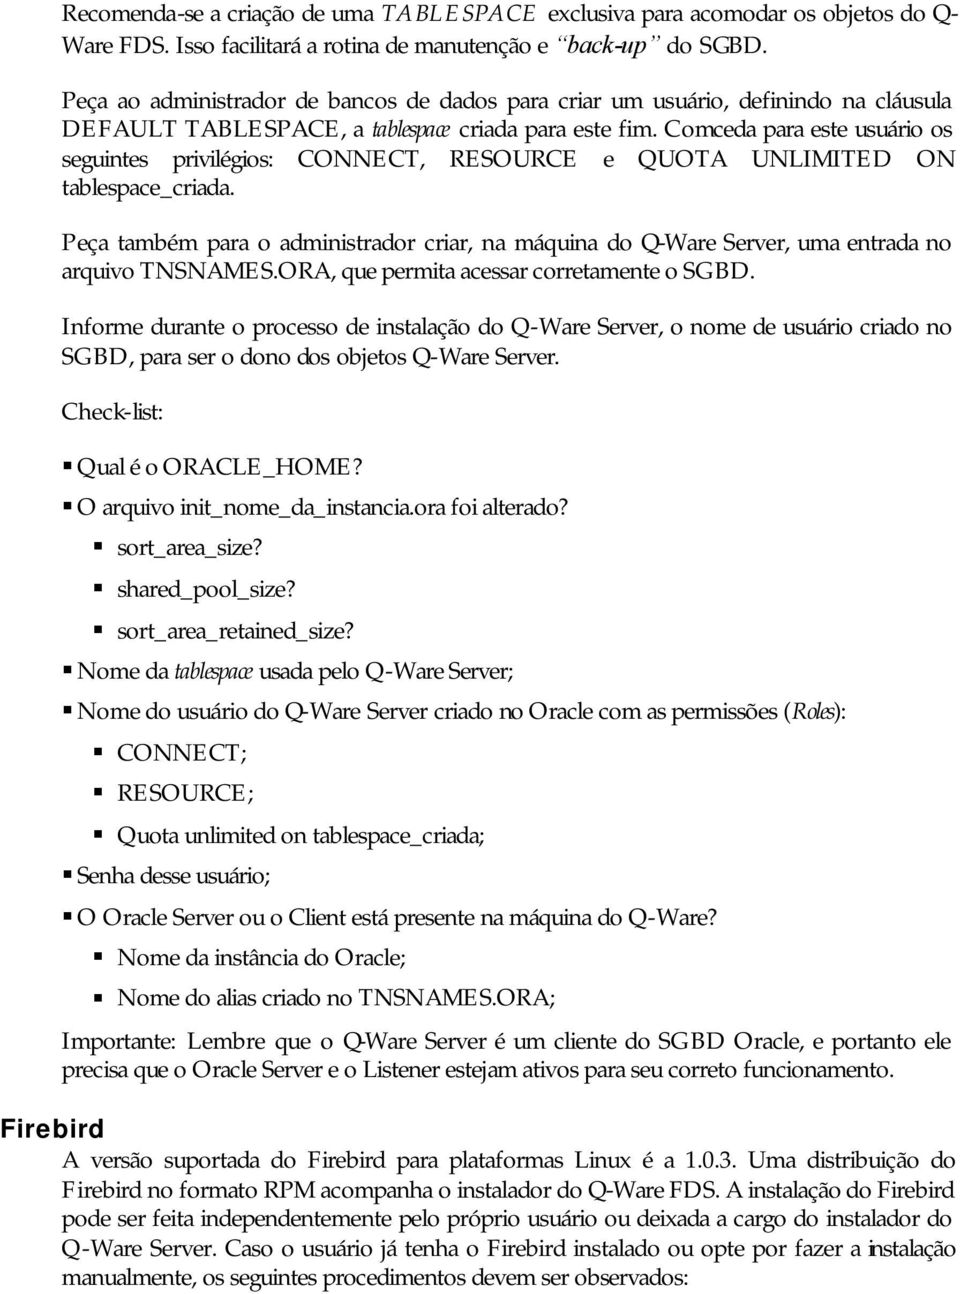 Comceda para este usuário os seguintes privilégios: CONNECT, RESOURCE e QUOTA UNLIMITED ON tablespace_criada.